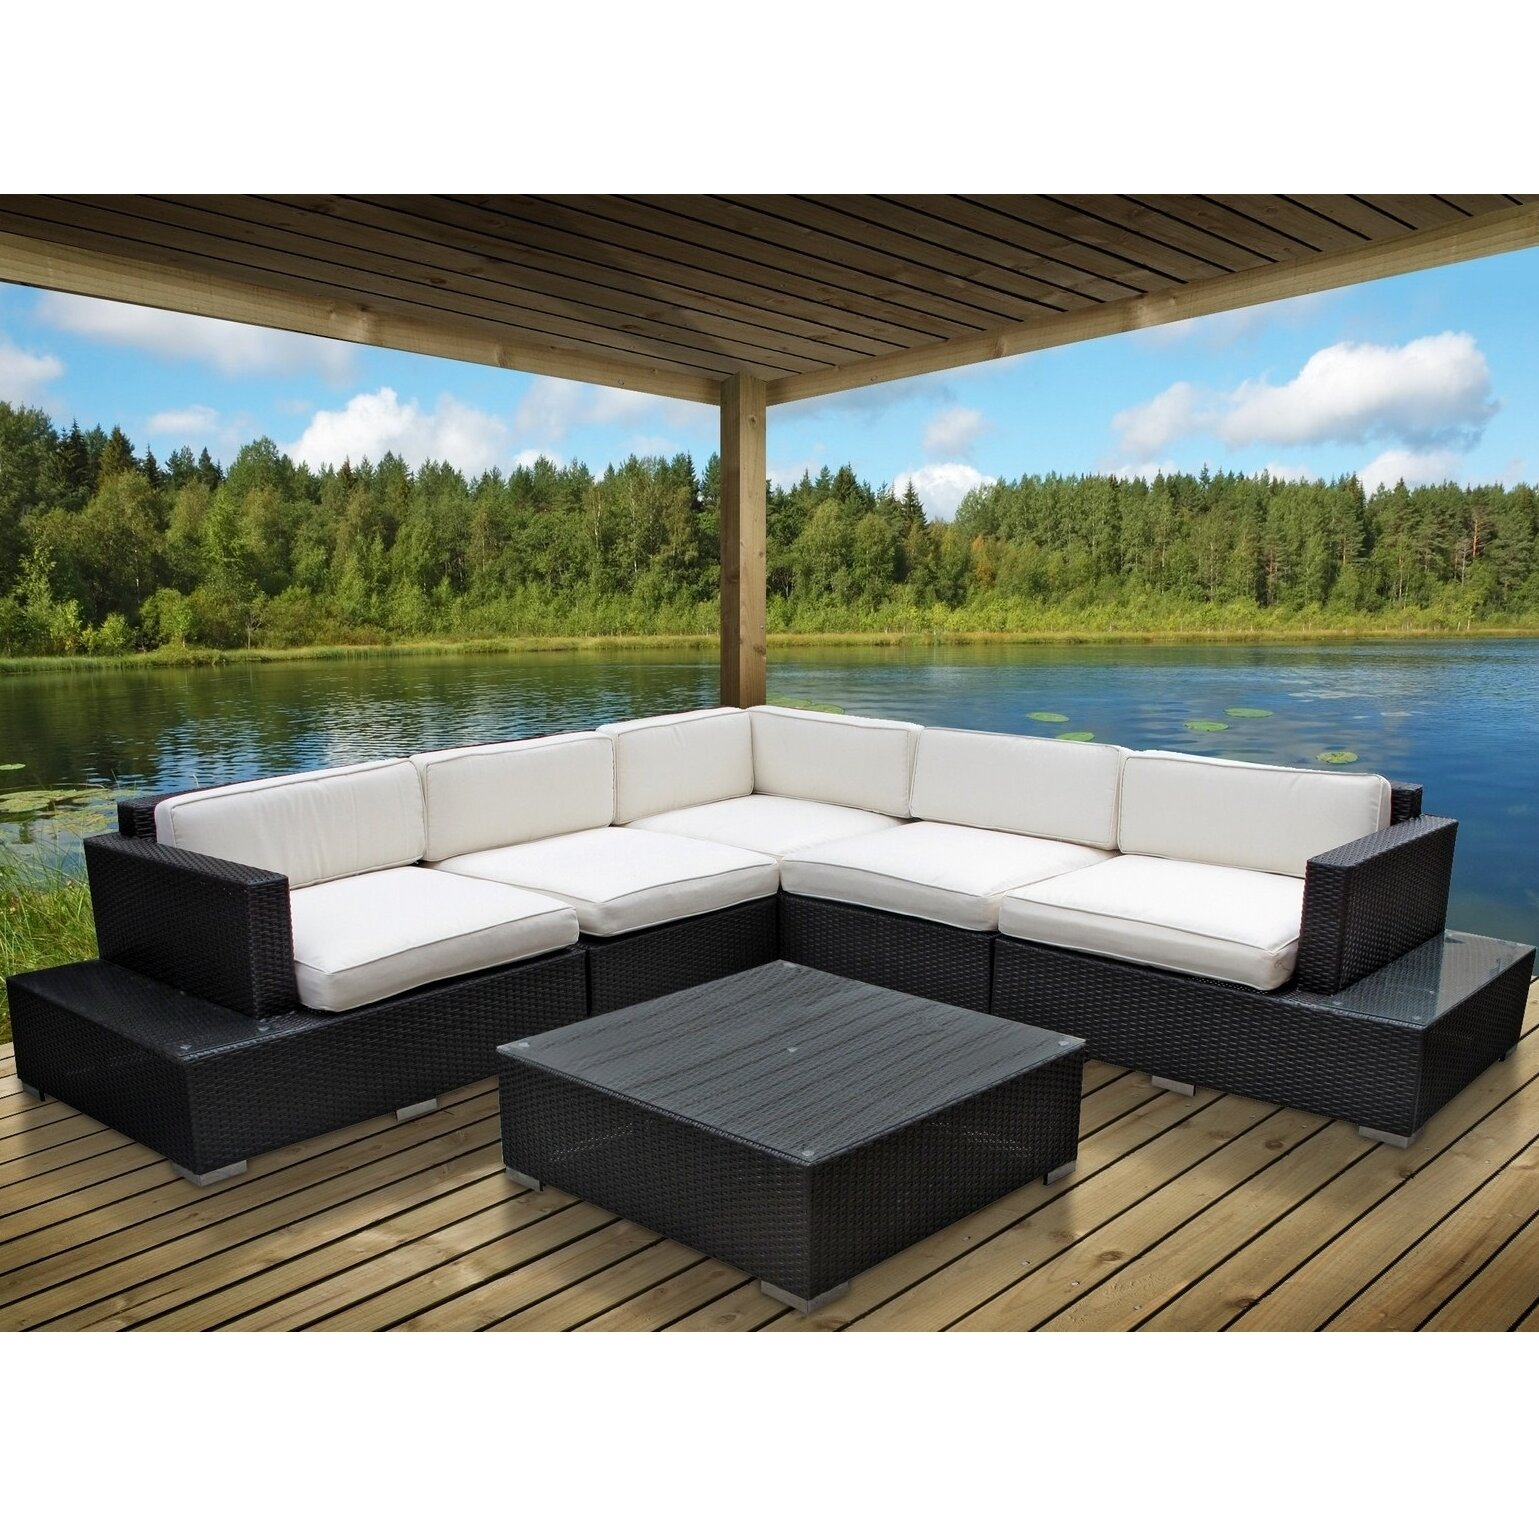 Modway Port 6 Piece Outdoor Patio Sectional Set Amp Reviews